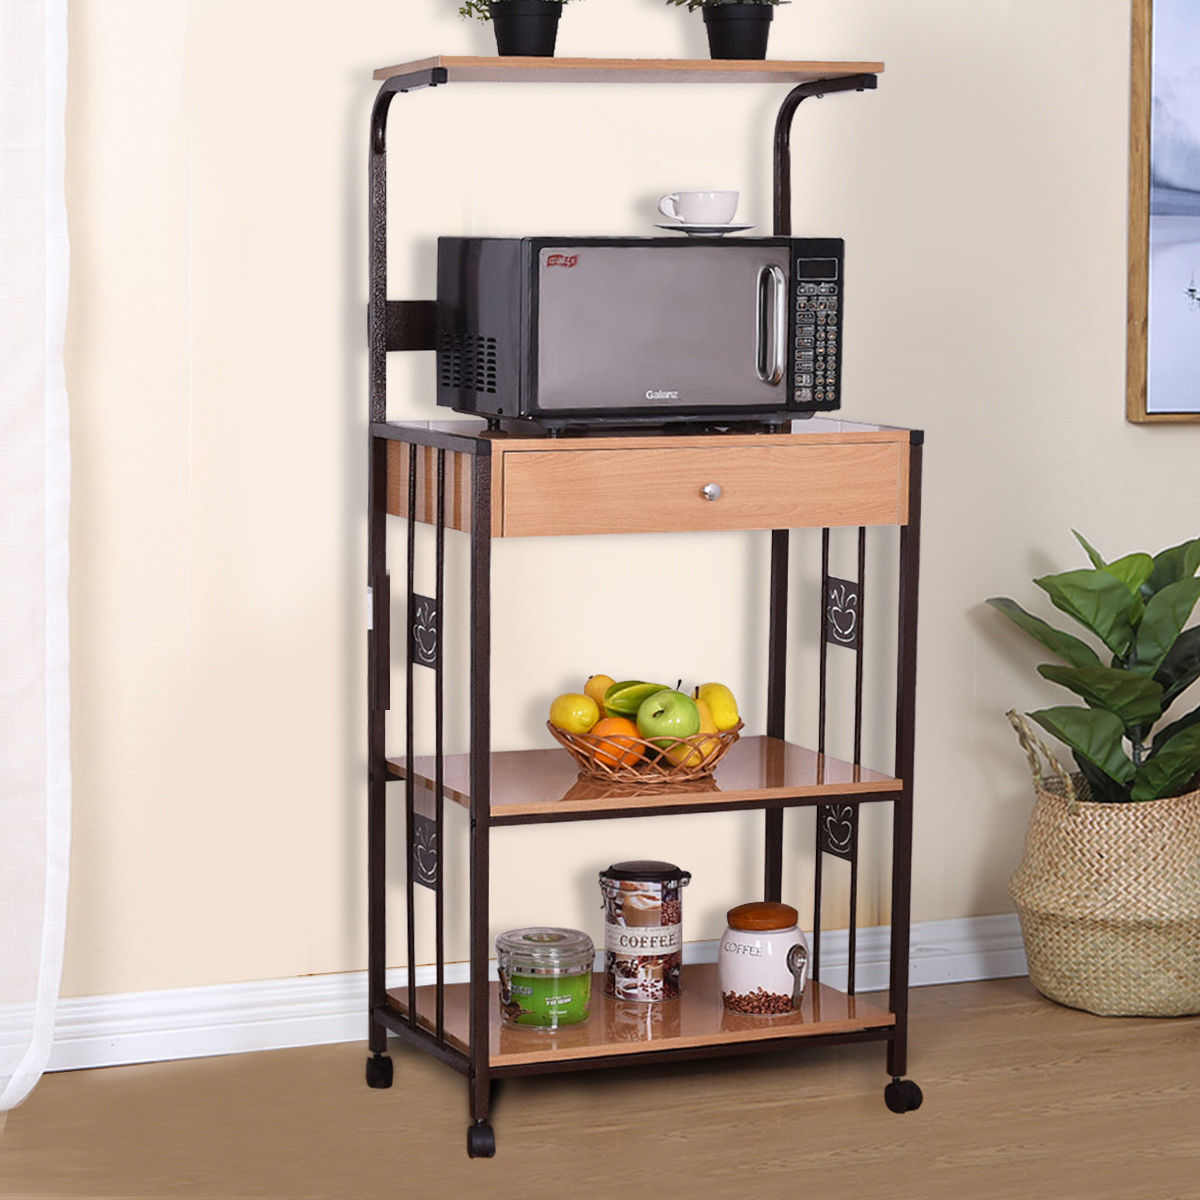 Costway 59\'\' Bakers Rack Microwave Stand Rolling Kitchen Storage Cart  w/Electric Outlet